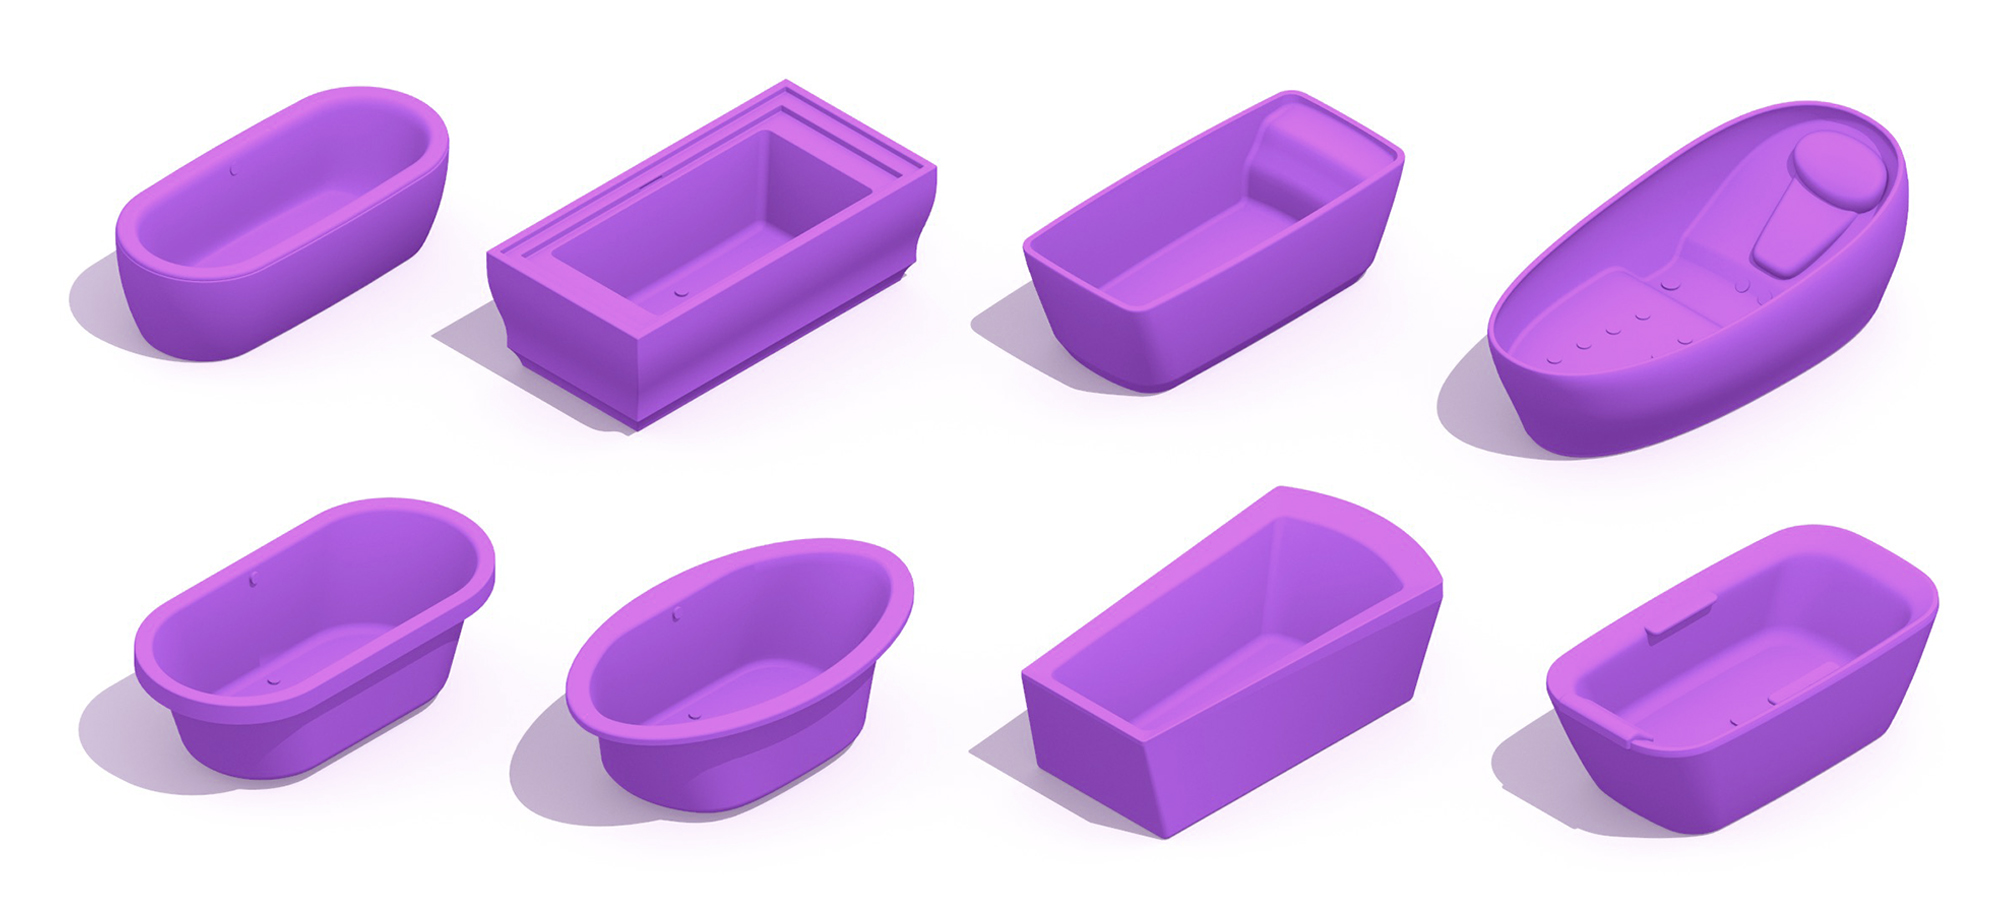 Collection of 3D Bathtubs (Baths) showing a variety of bathtub styles, sizes, types and designs